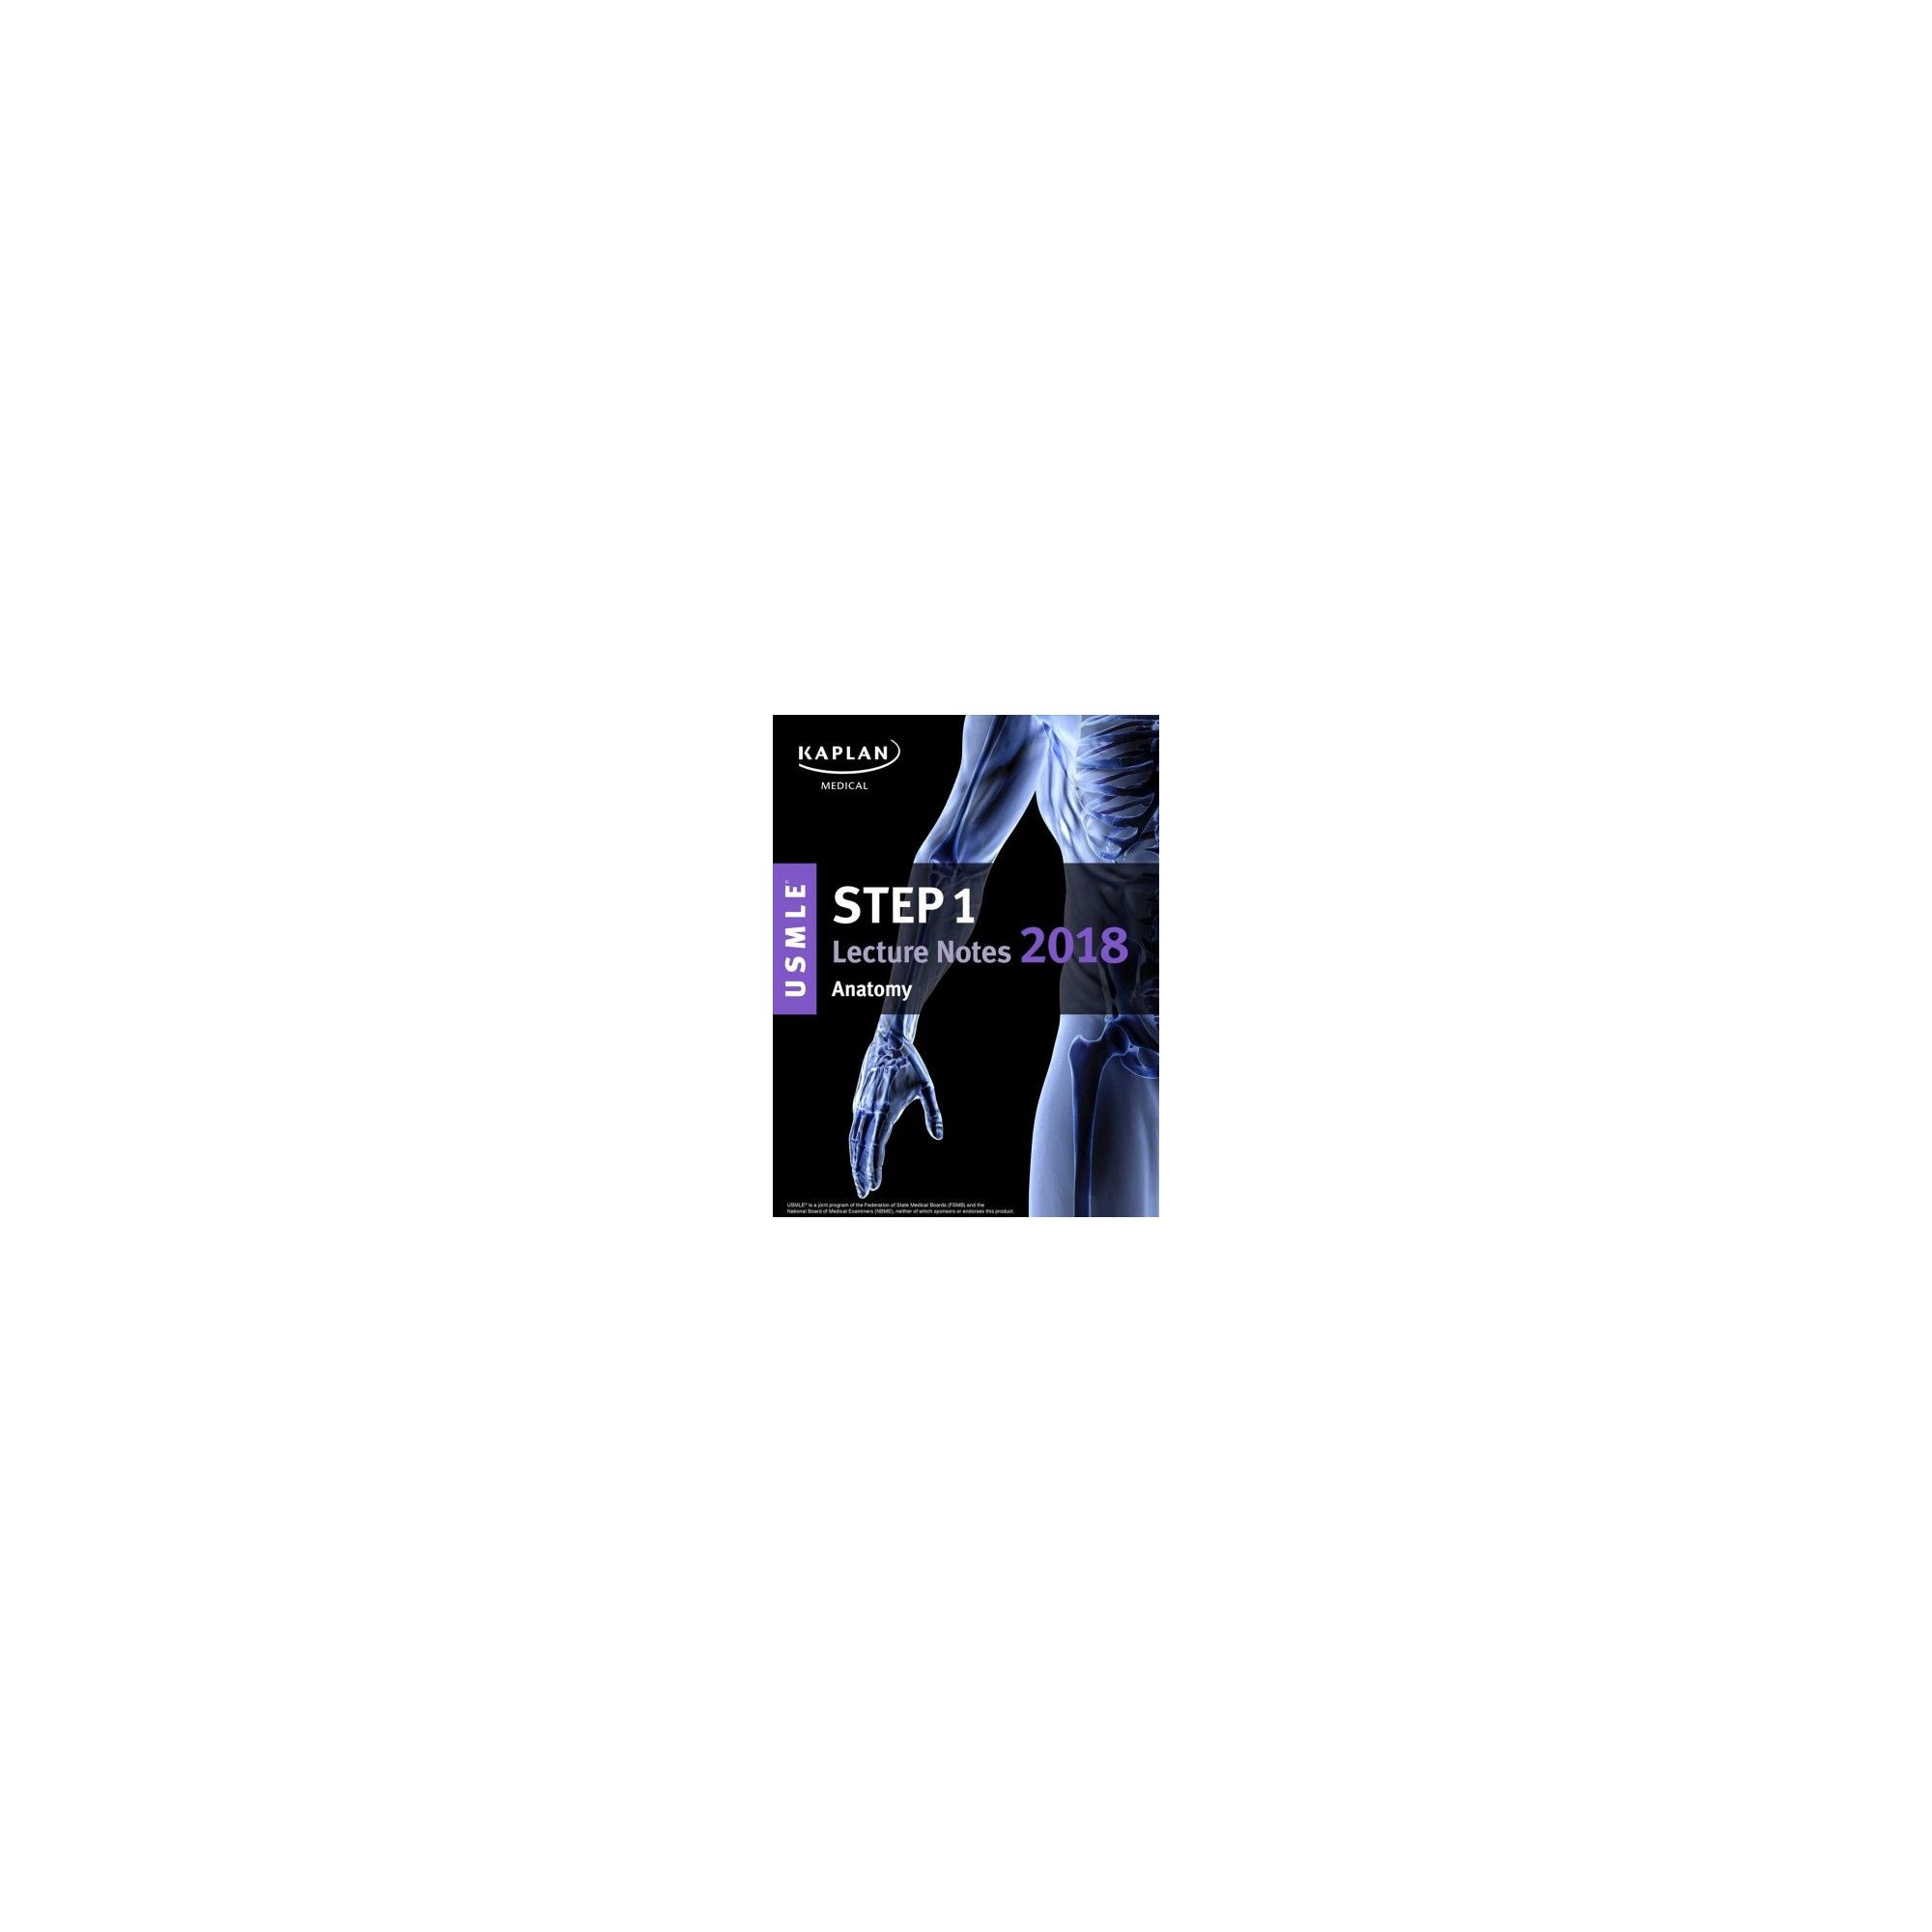 Kaplan Usmle Step 1 Anatomy Lecture Notes 2018 (Paperback) | Note ...